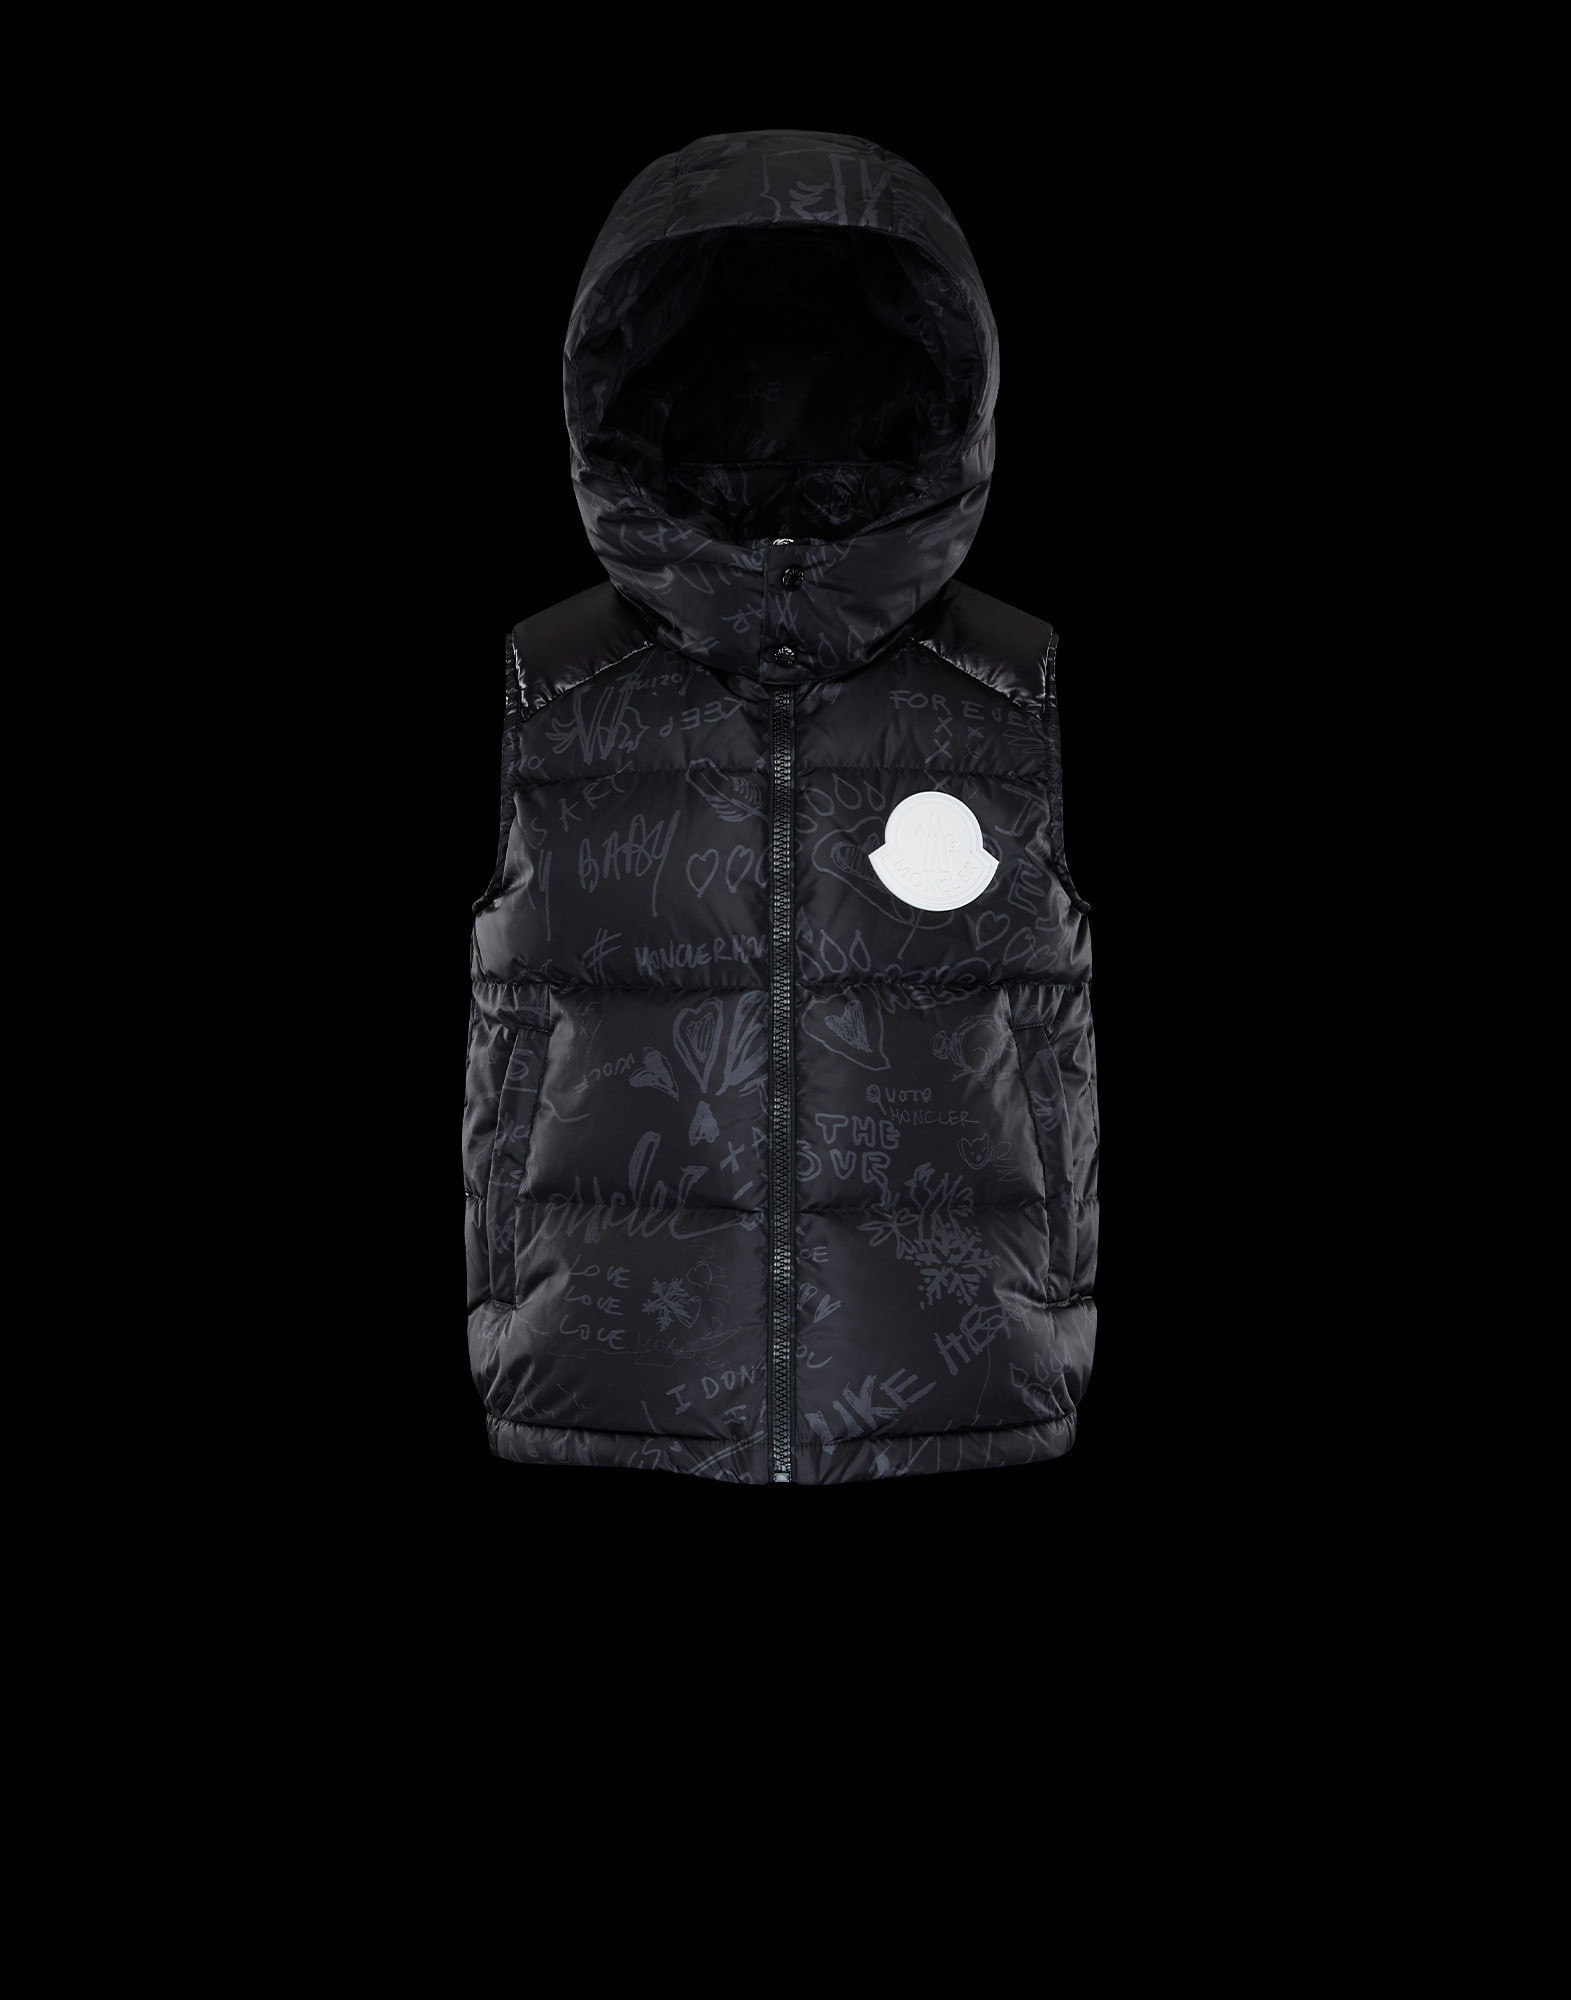 MONCLER2020/21AW新作キッズフード付ダウンベストANTWAN 8A/10A (MONCLER/キッズアウター) 956 1A502 20 53A19J